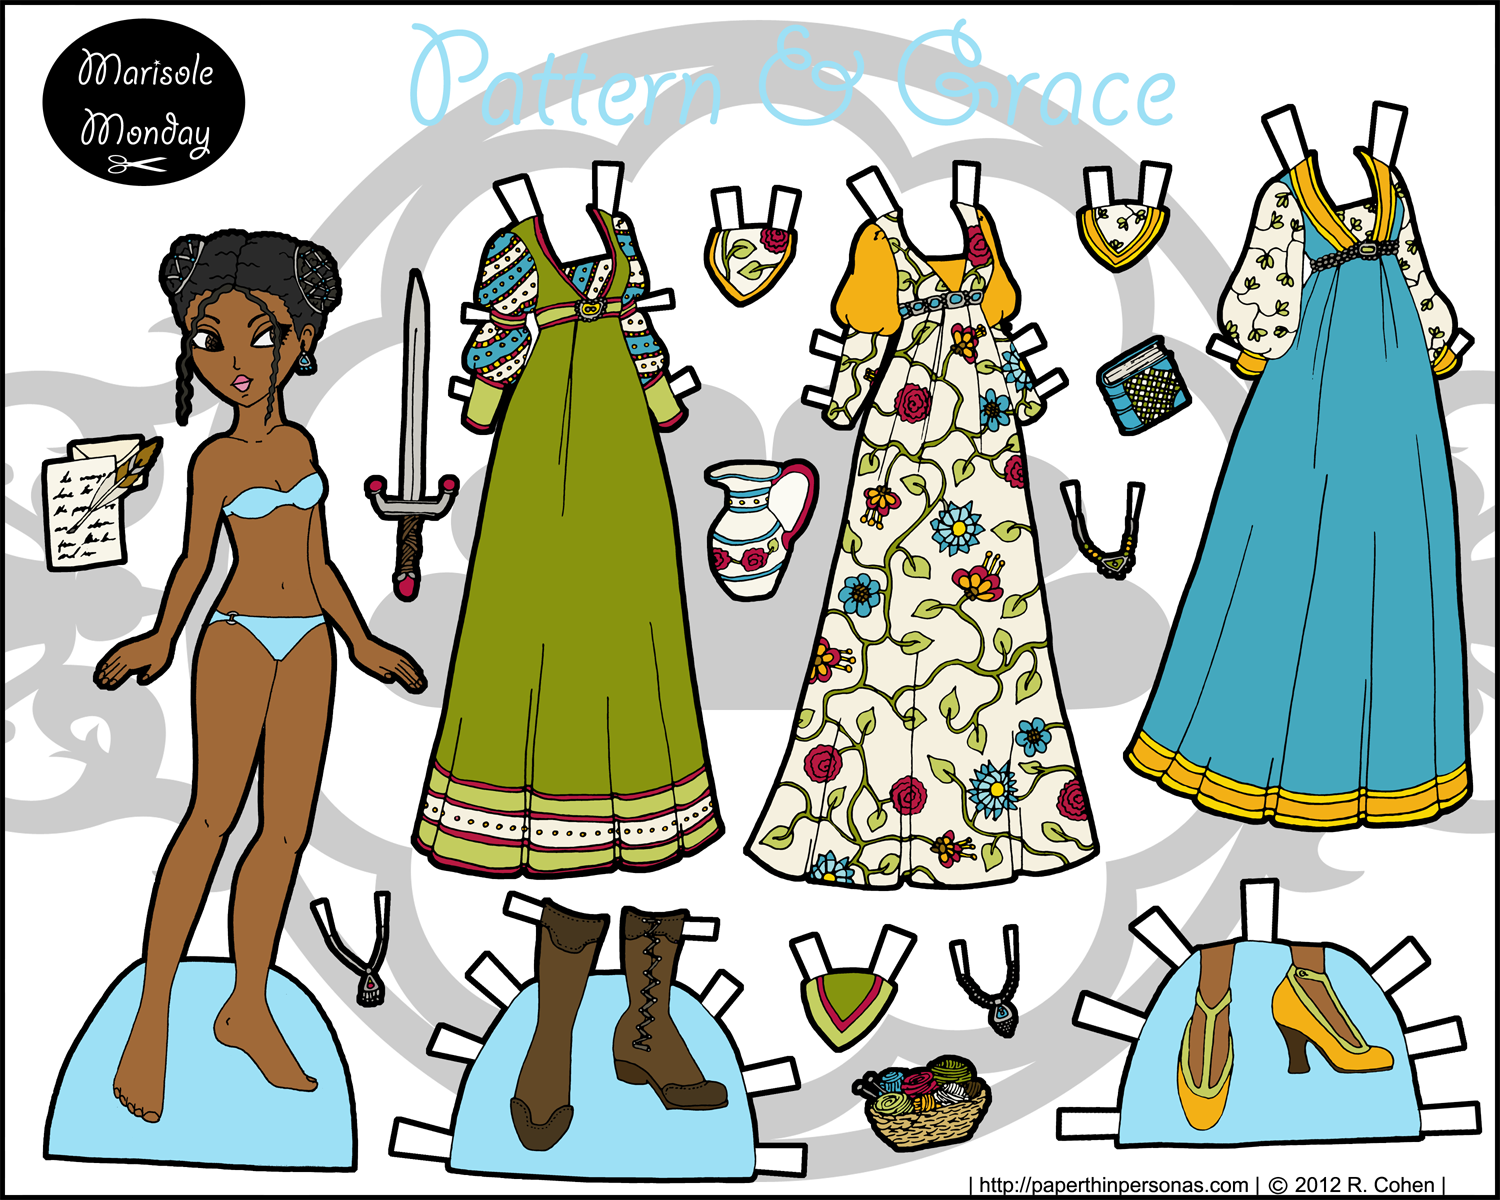 Marisole Monday: Pattern & Grace- Full Color • Paper Thin Personas